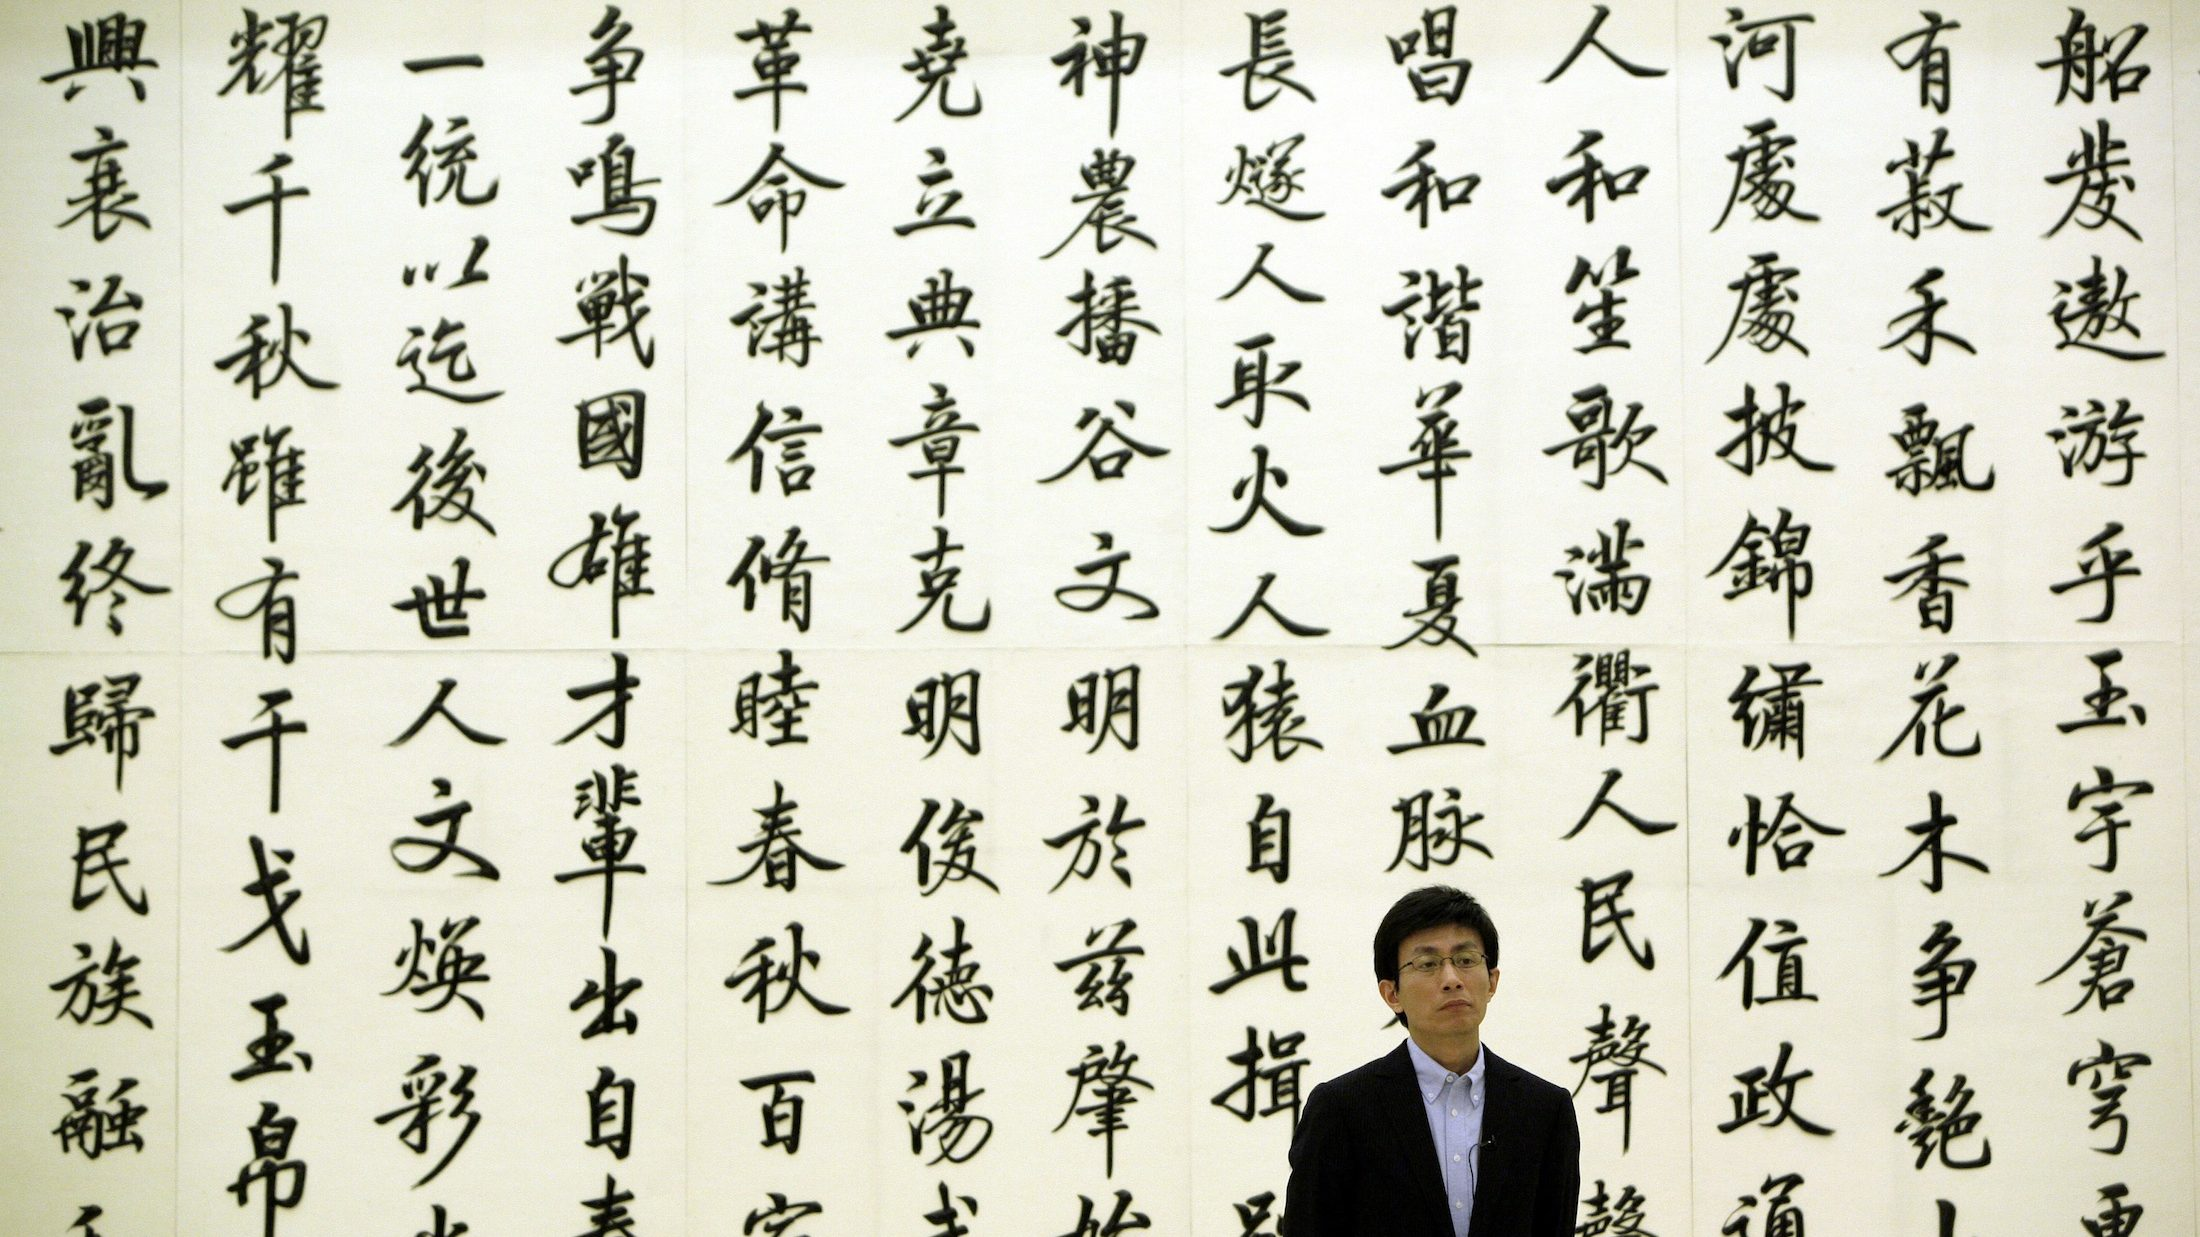 A book of Chinese poems has been translated into Kiswahili.